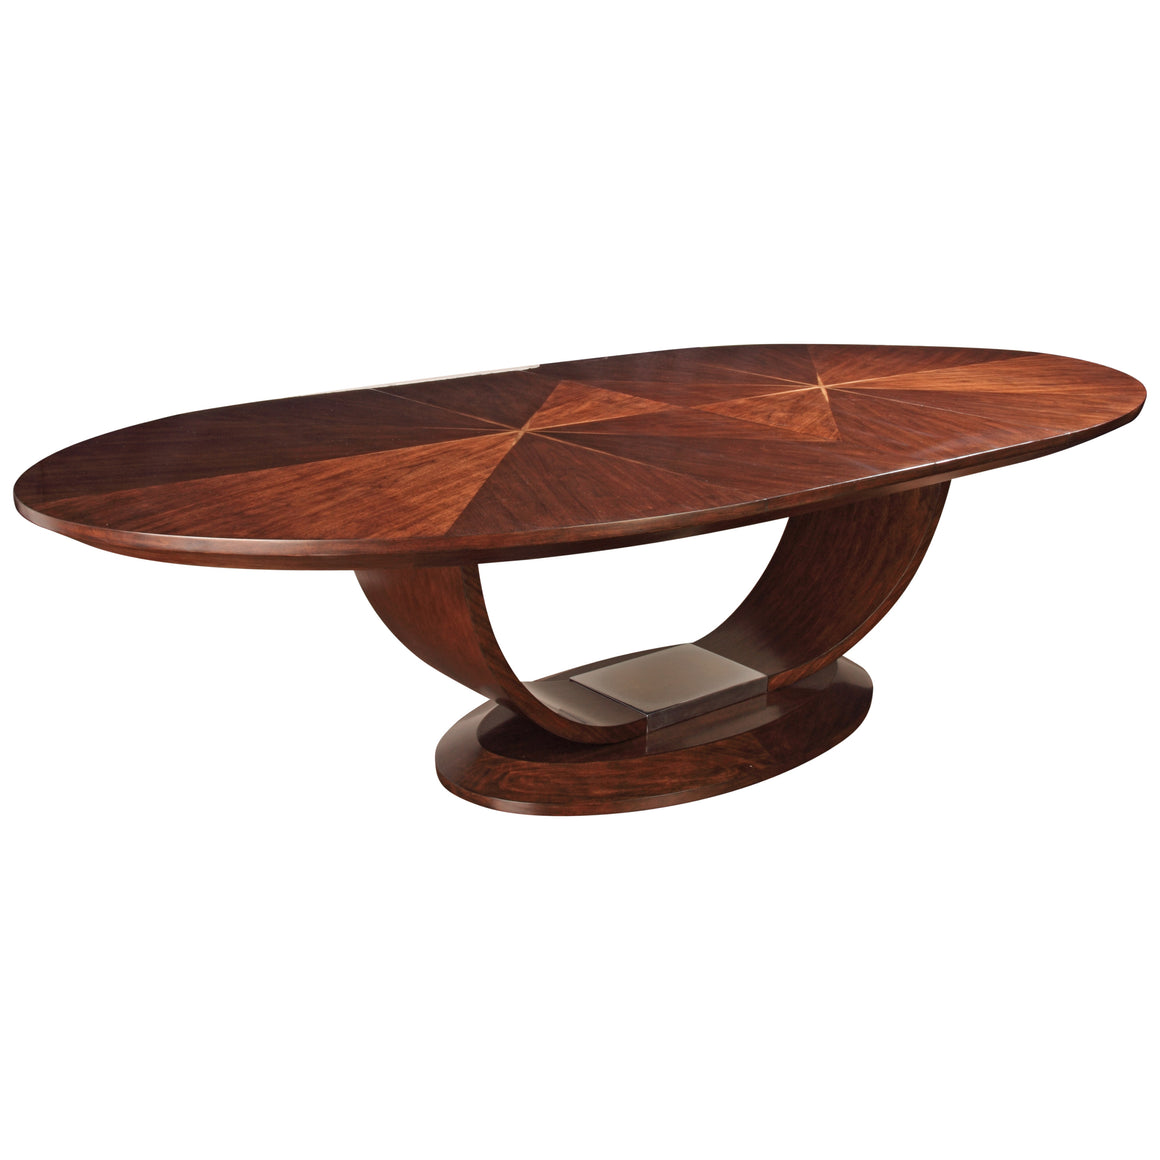 Contemporary Art-Deco Dining Table